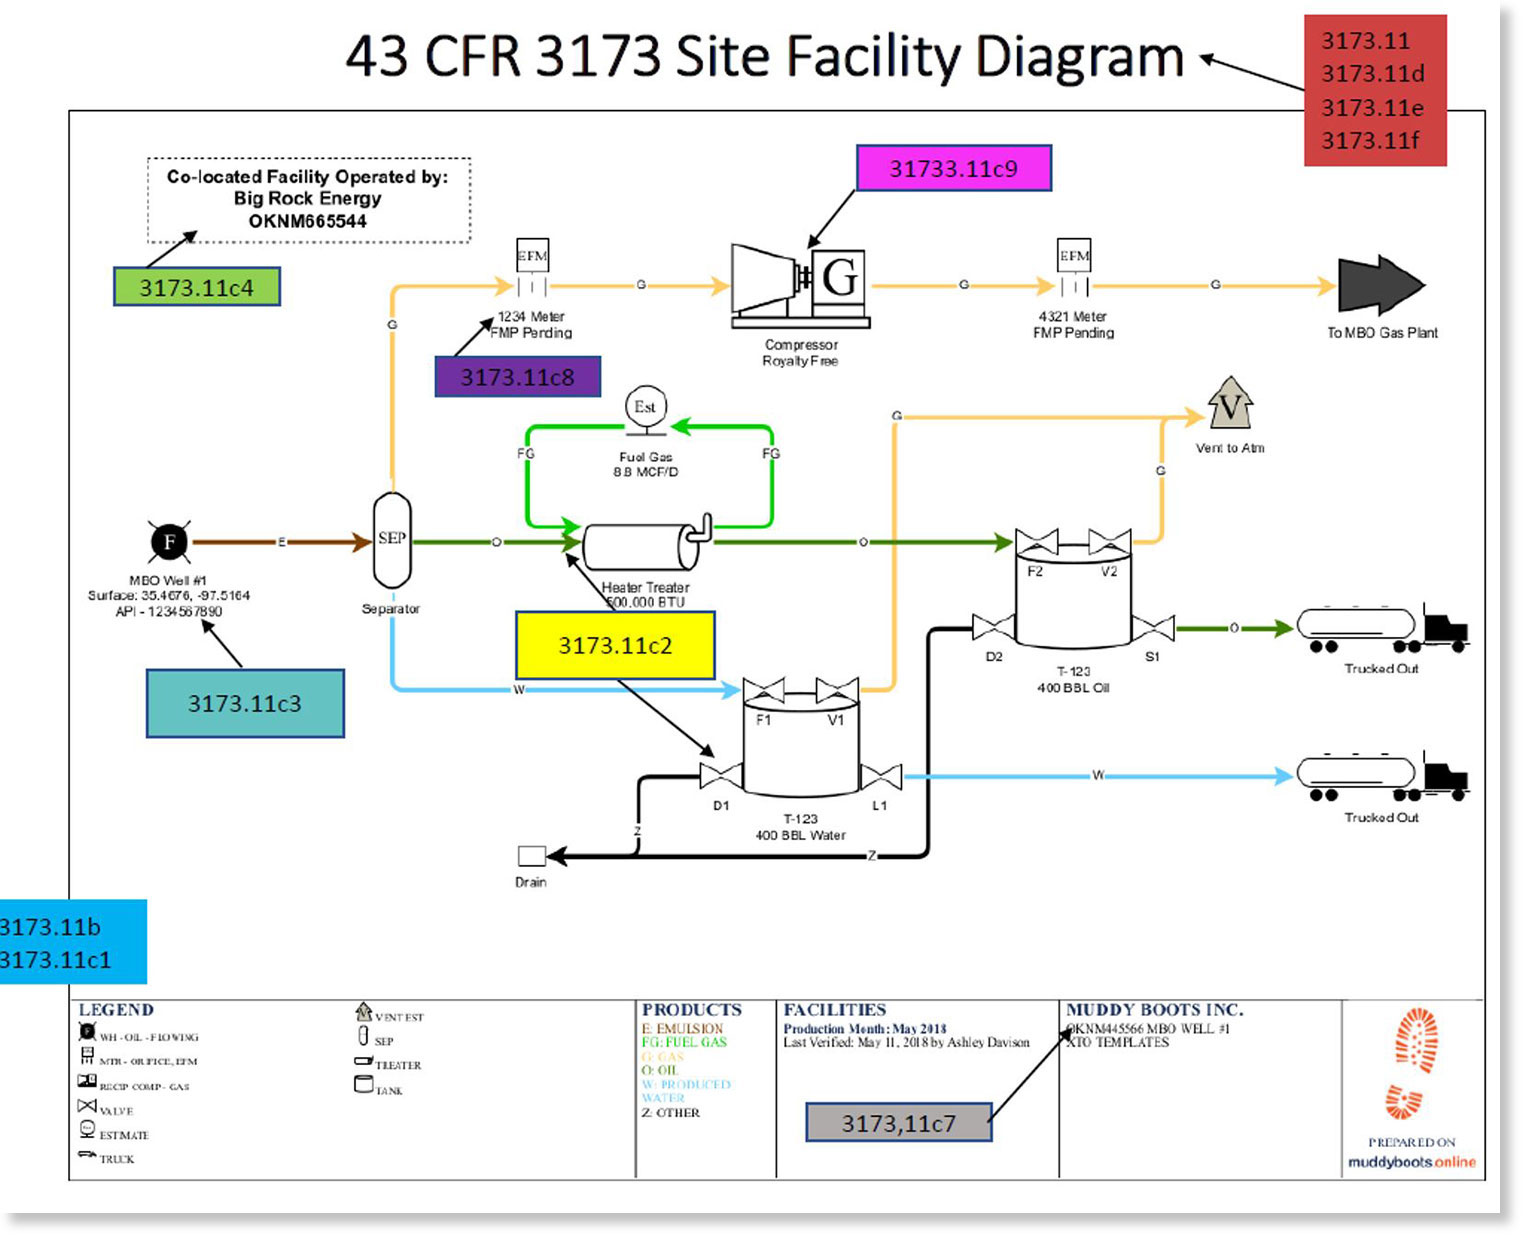 BLM Site Facility Diagrams